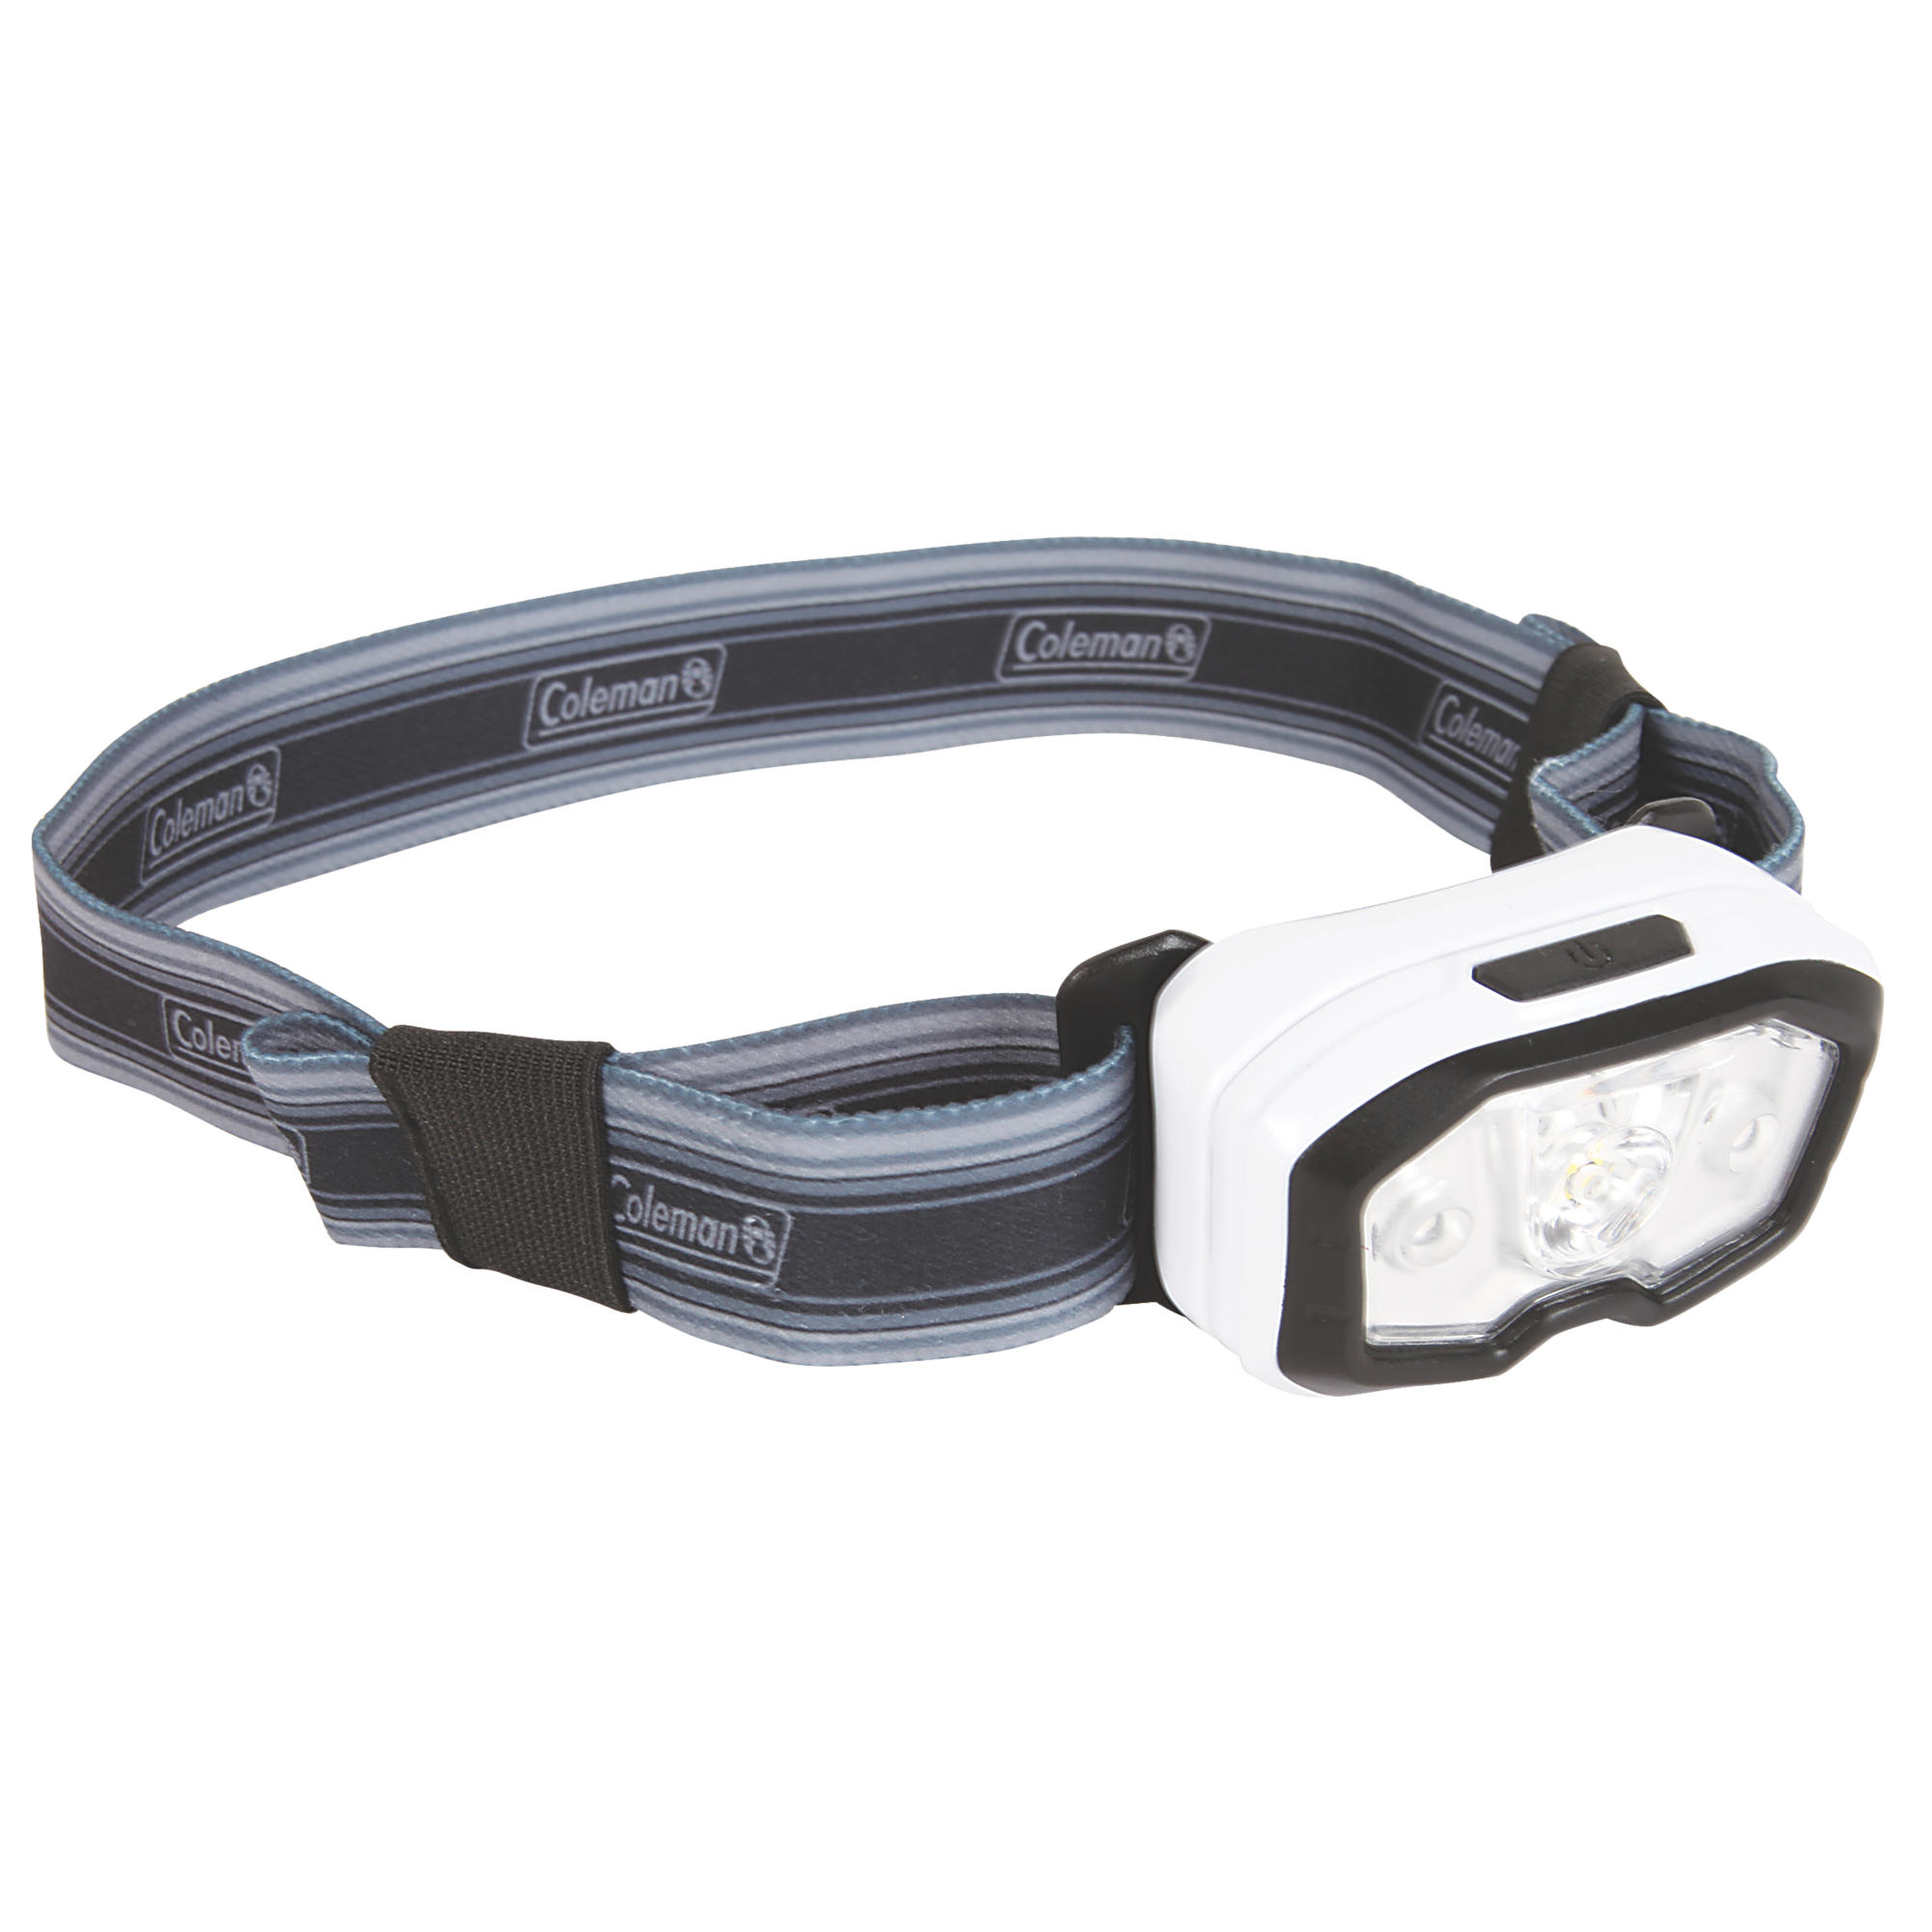 Divide 150L Headlamp